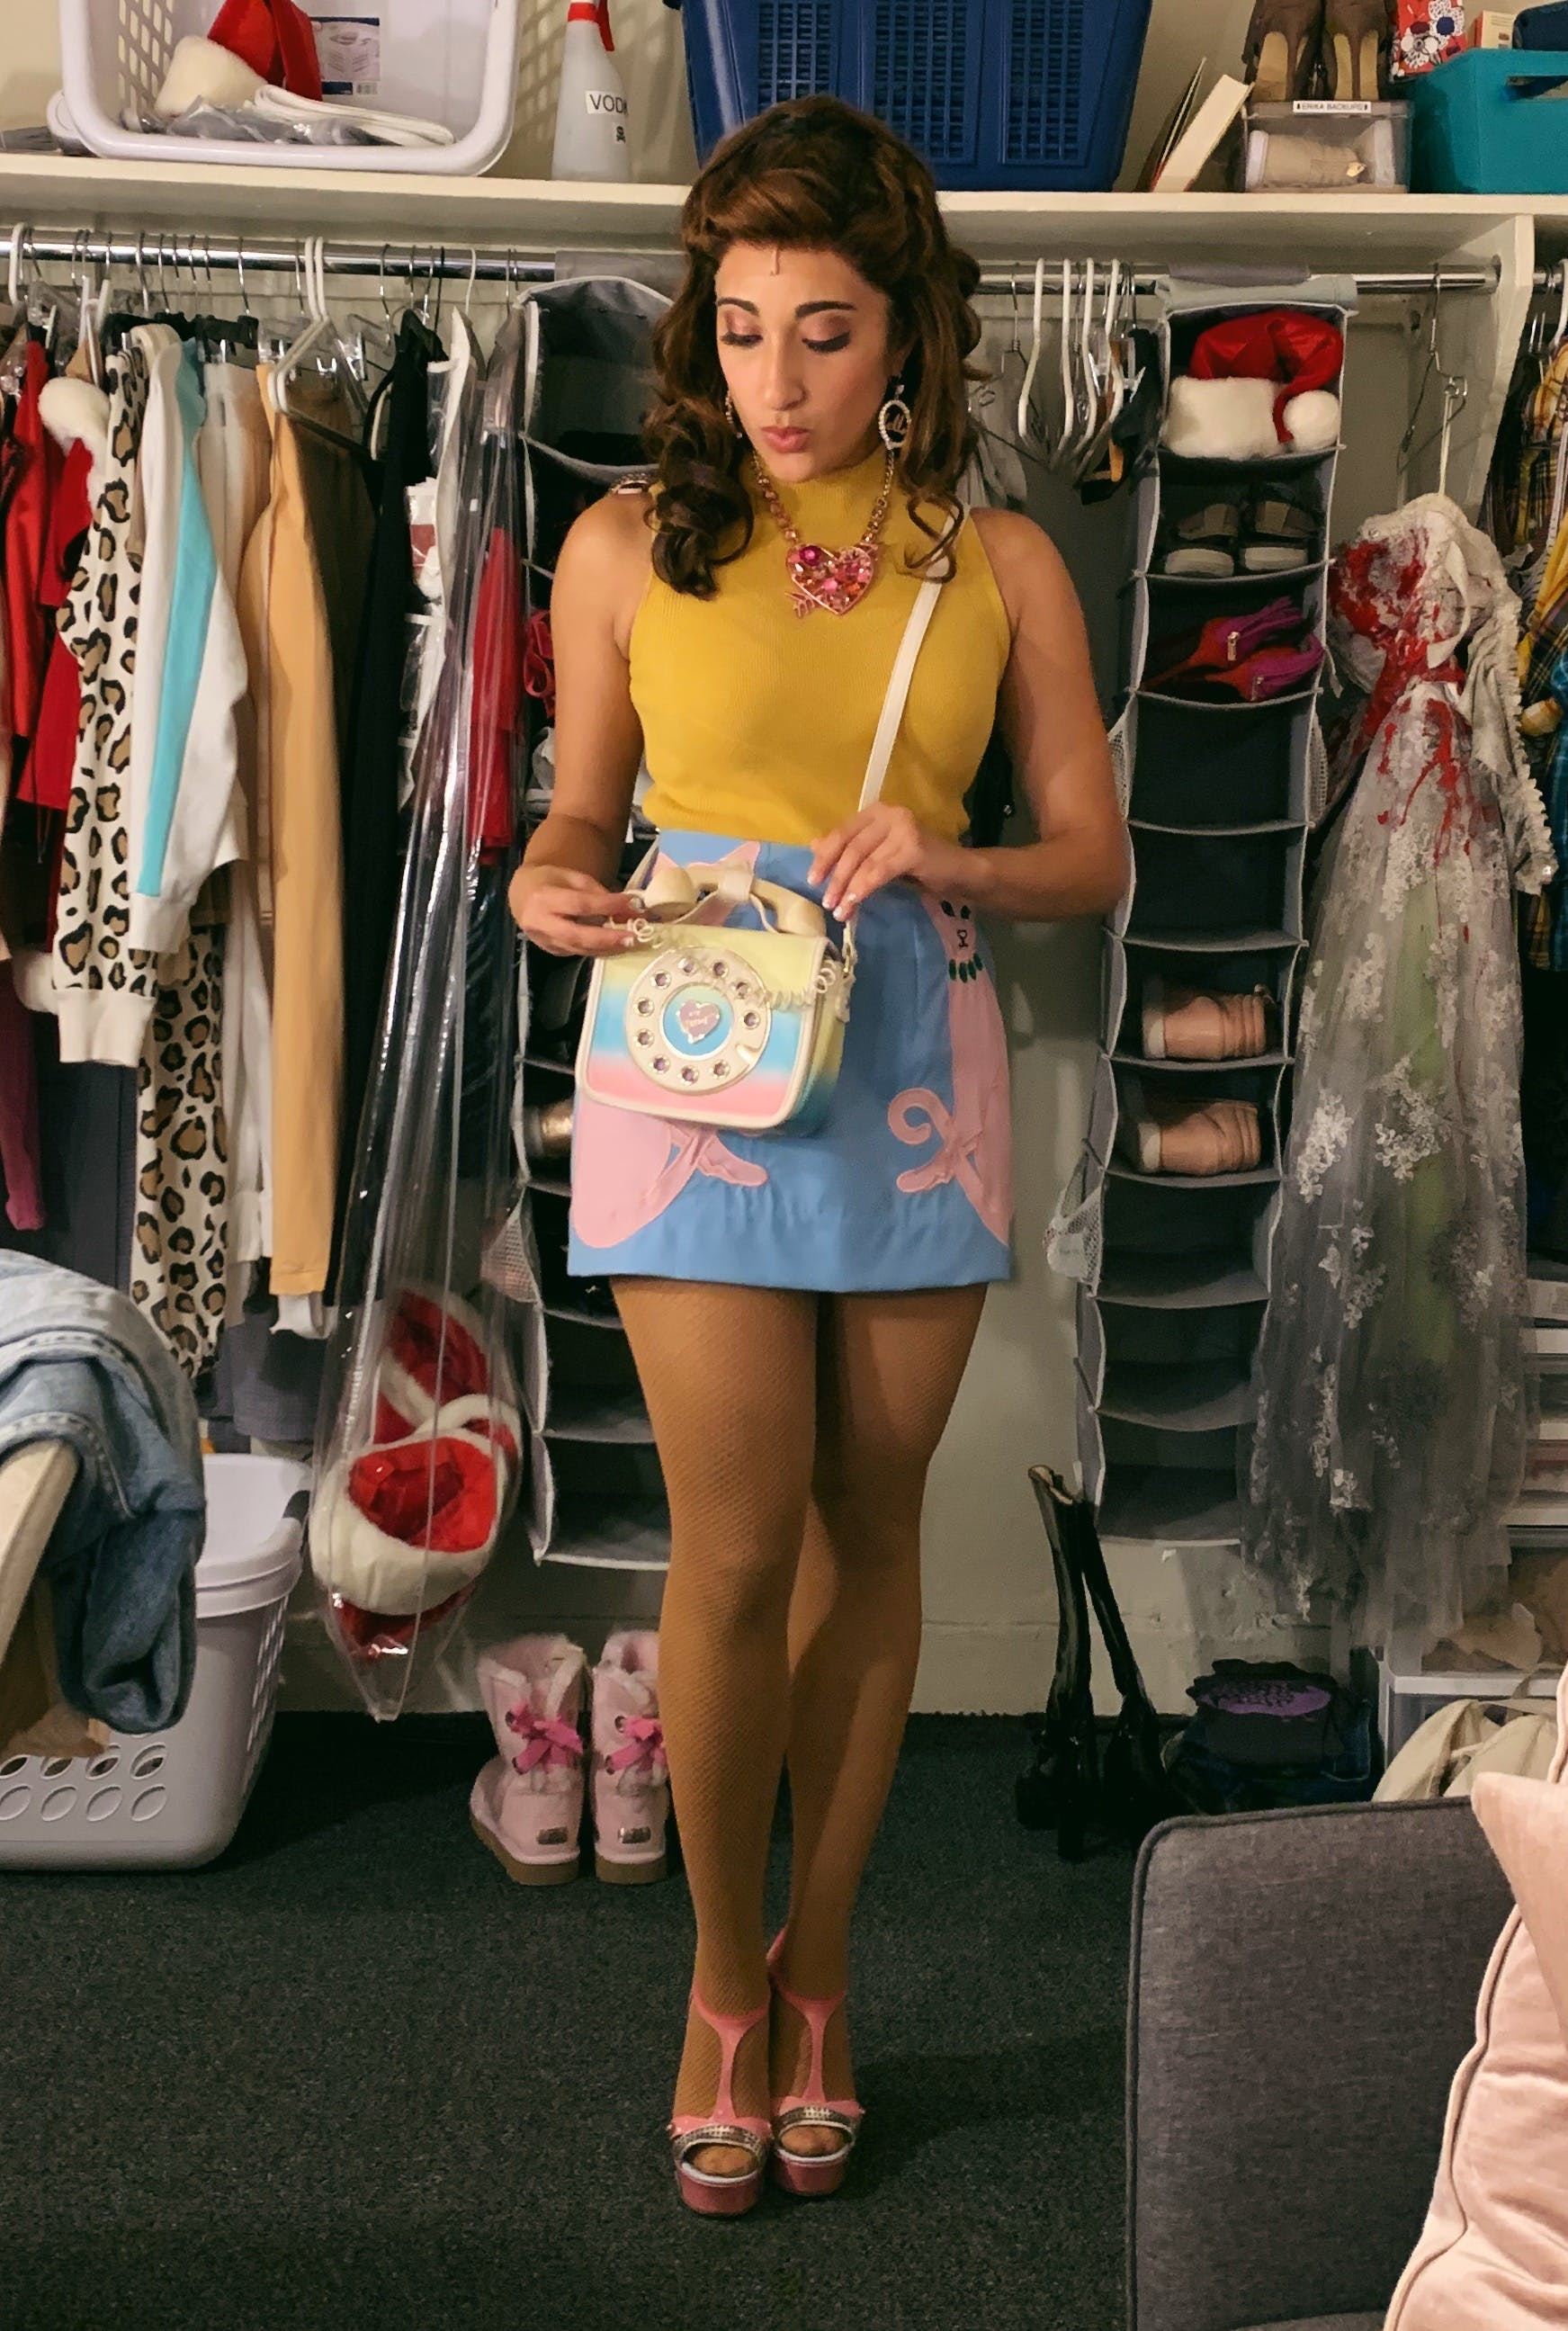 Mean Girls Star Krystina Alabado Shares All Her Fetch Gretchen Wieners Costumes The Daily Scoop View all gretchen wieners pictures (7 more). her fetch gretchen wieners costumes